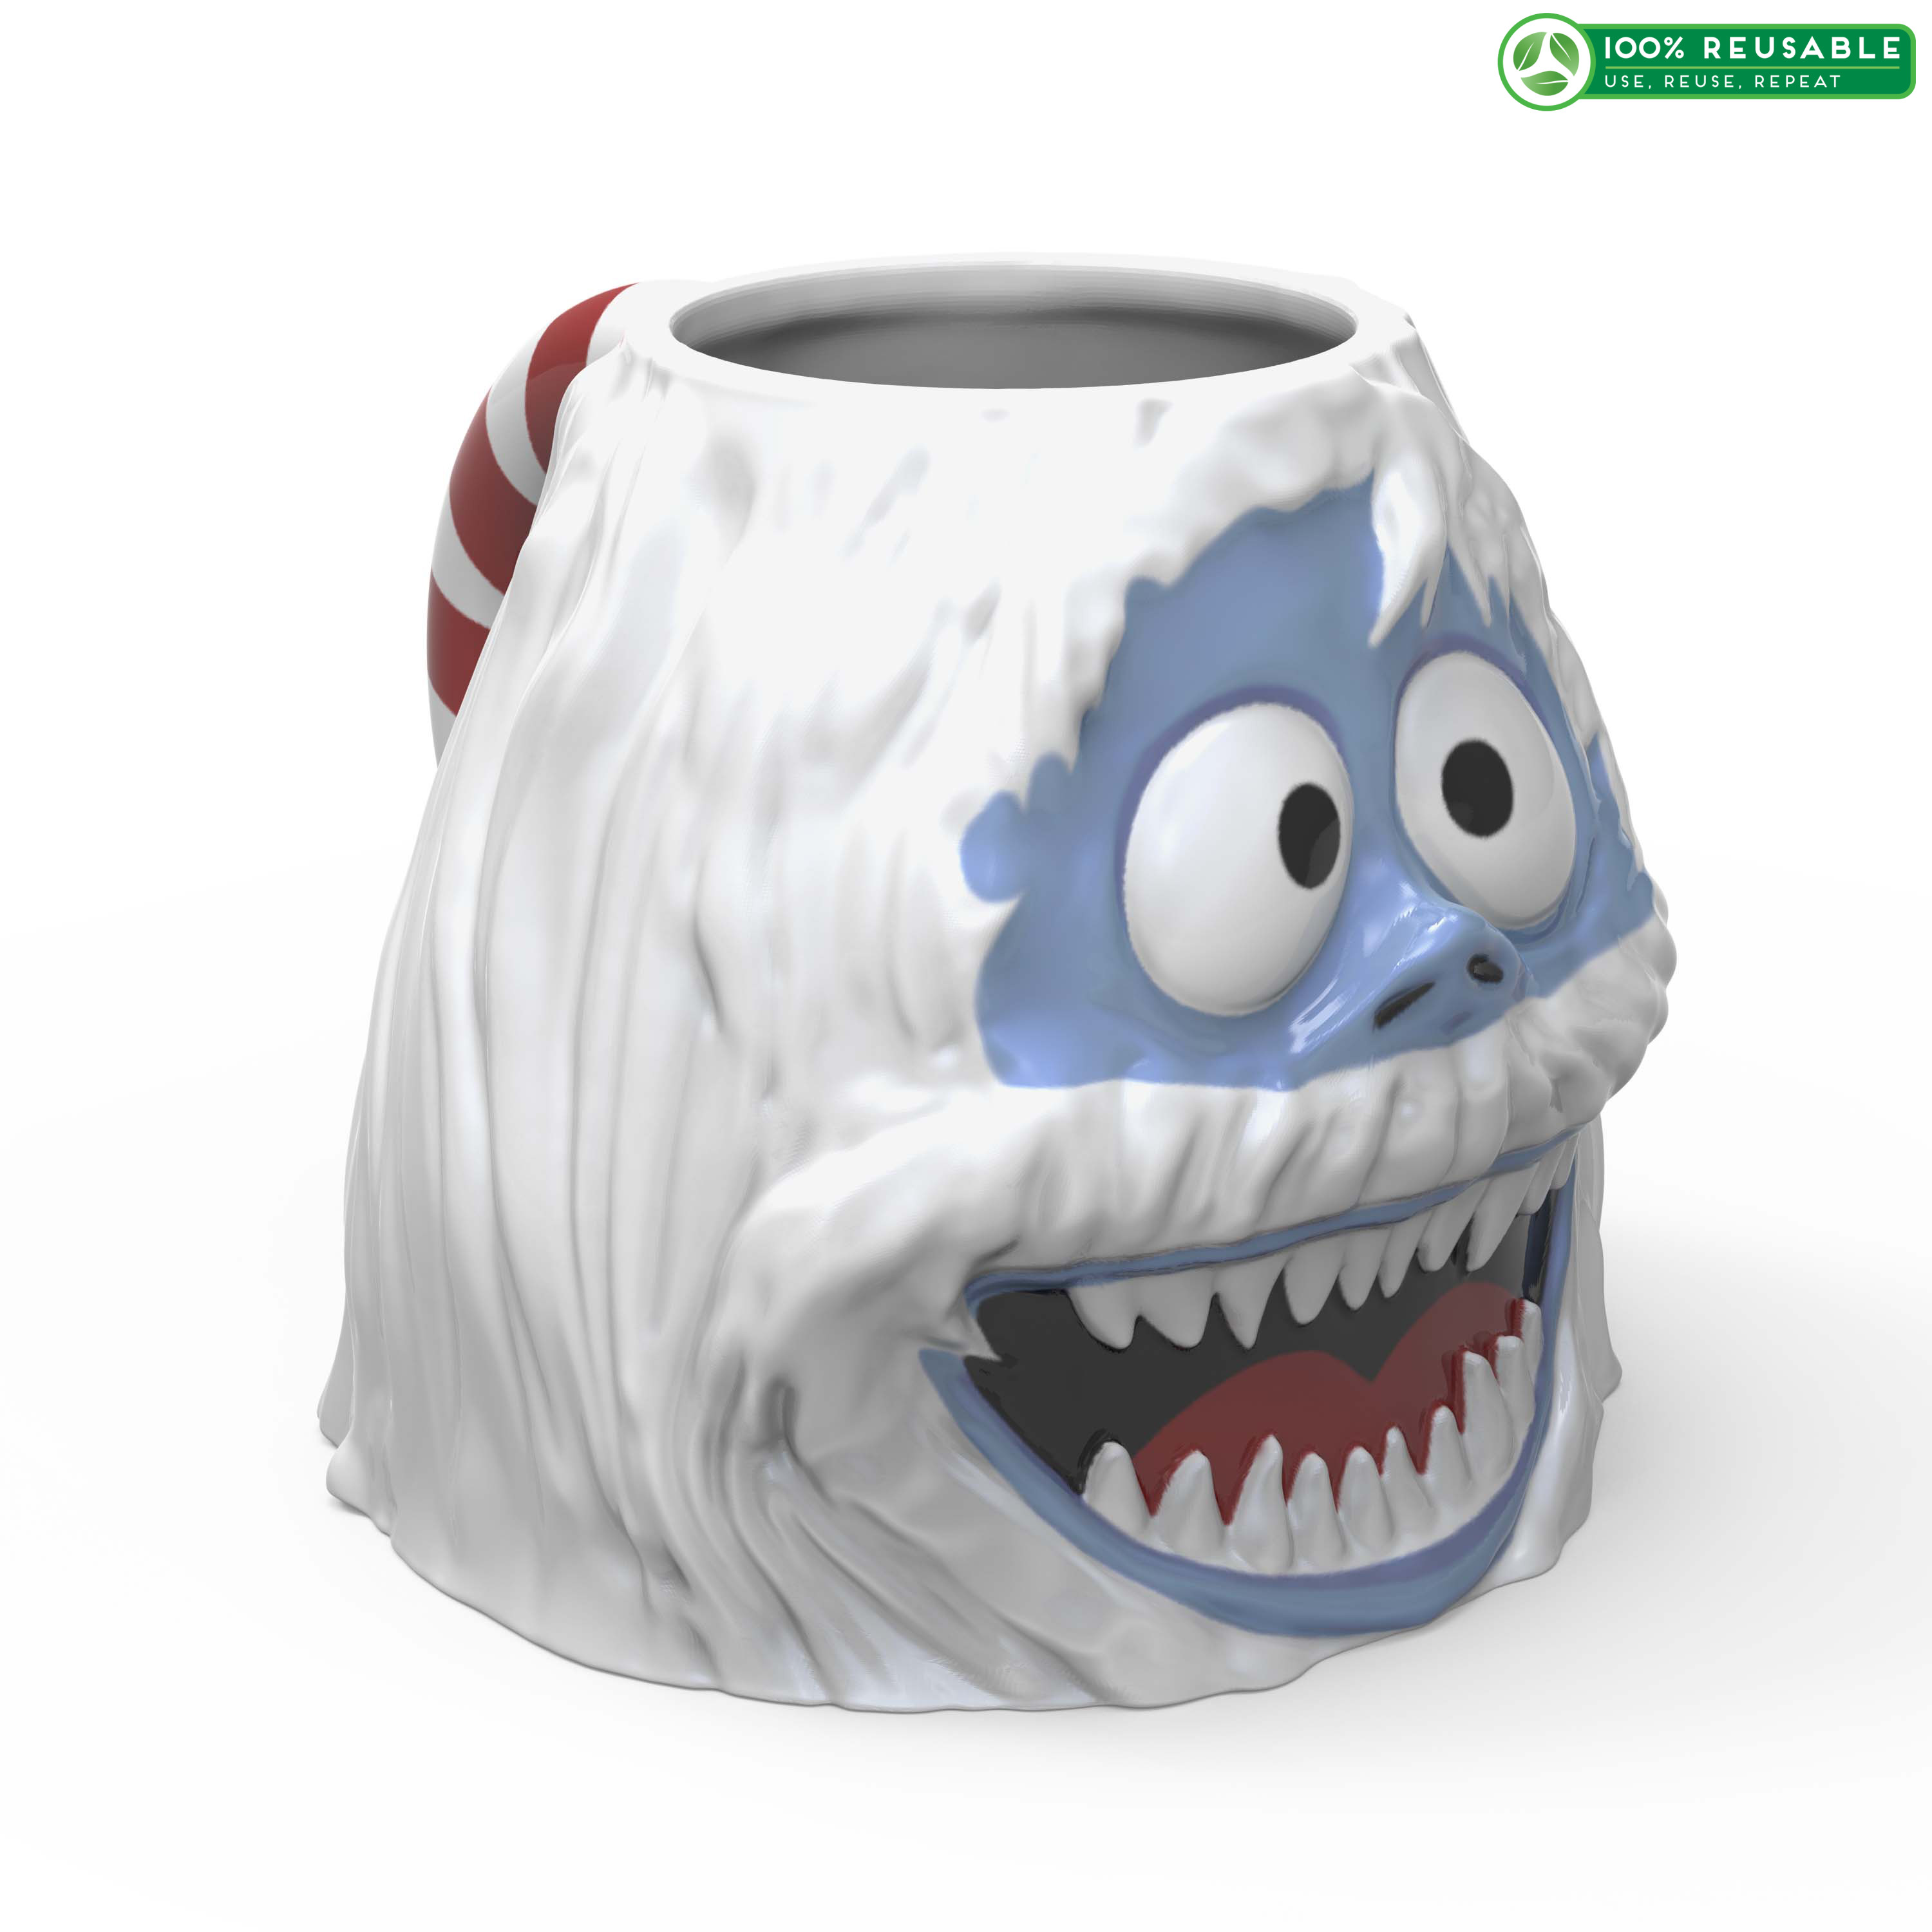 Collectible Christmas Mugs Bumbles The Abominable Snowman